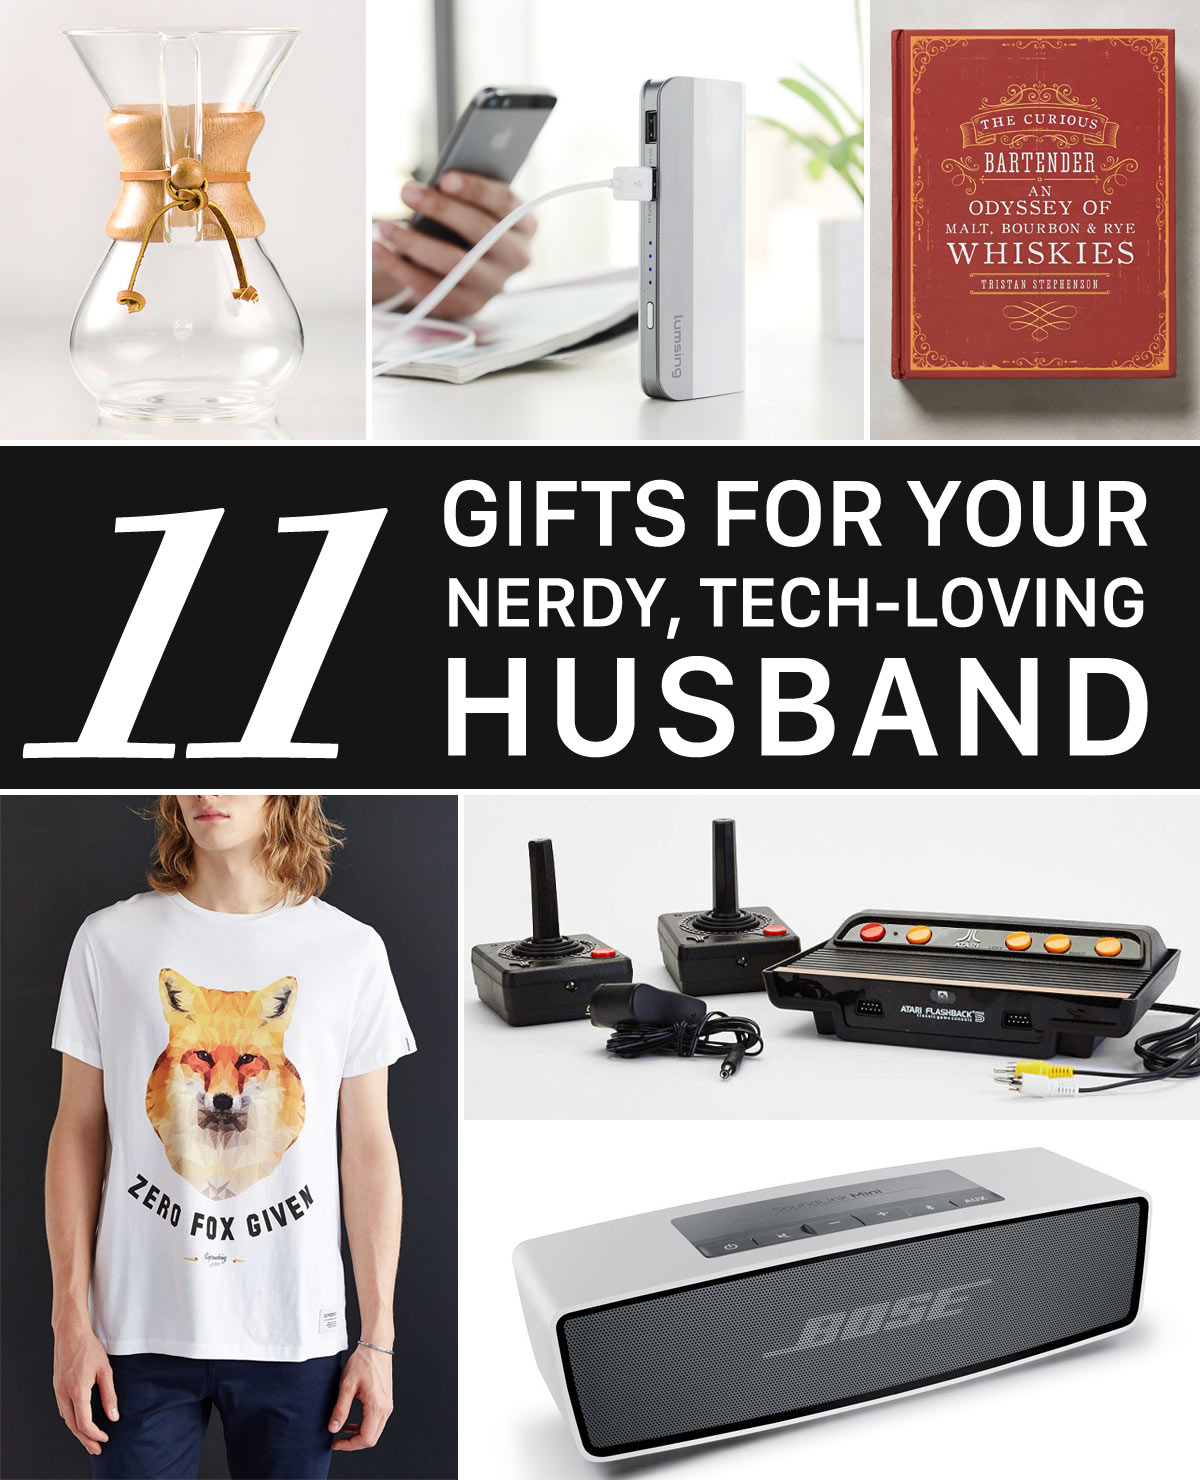 Holiday Gift Guide #2: For Your Nerdy, Tech-Loving Husband